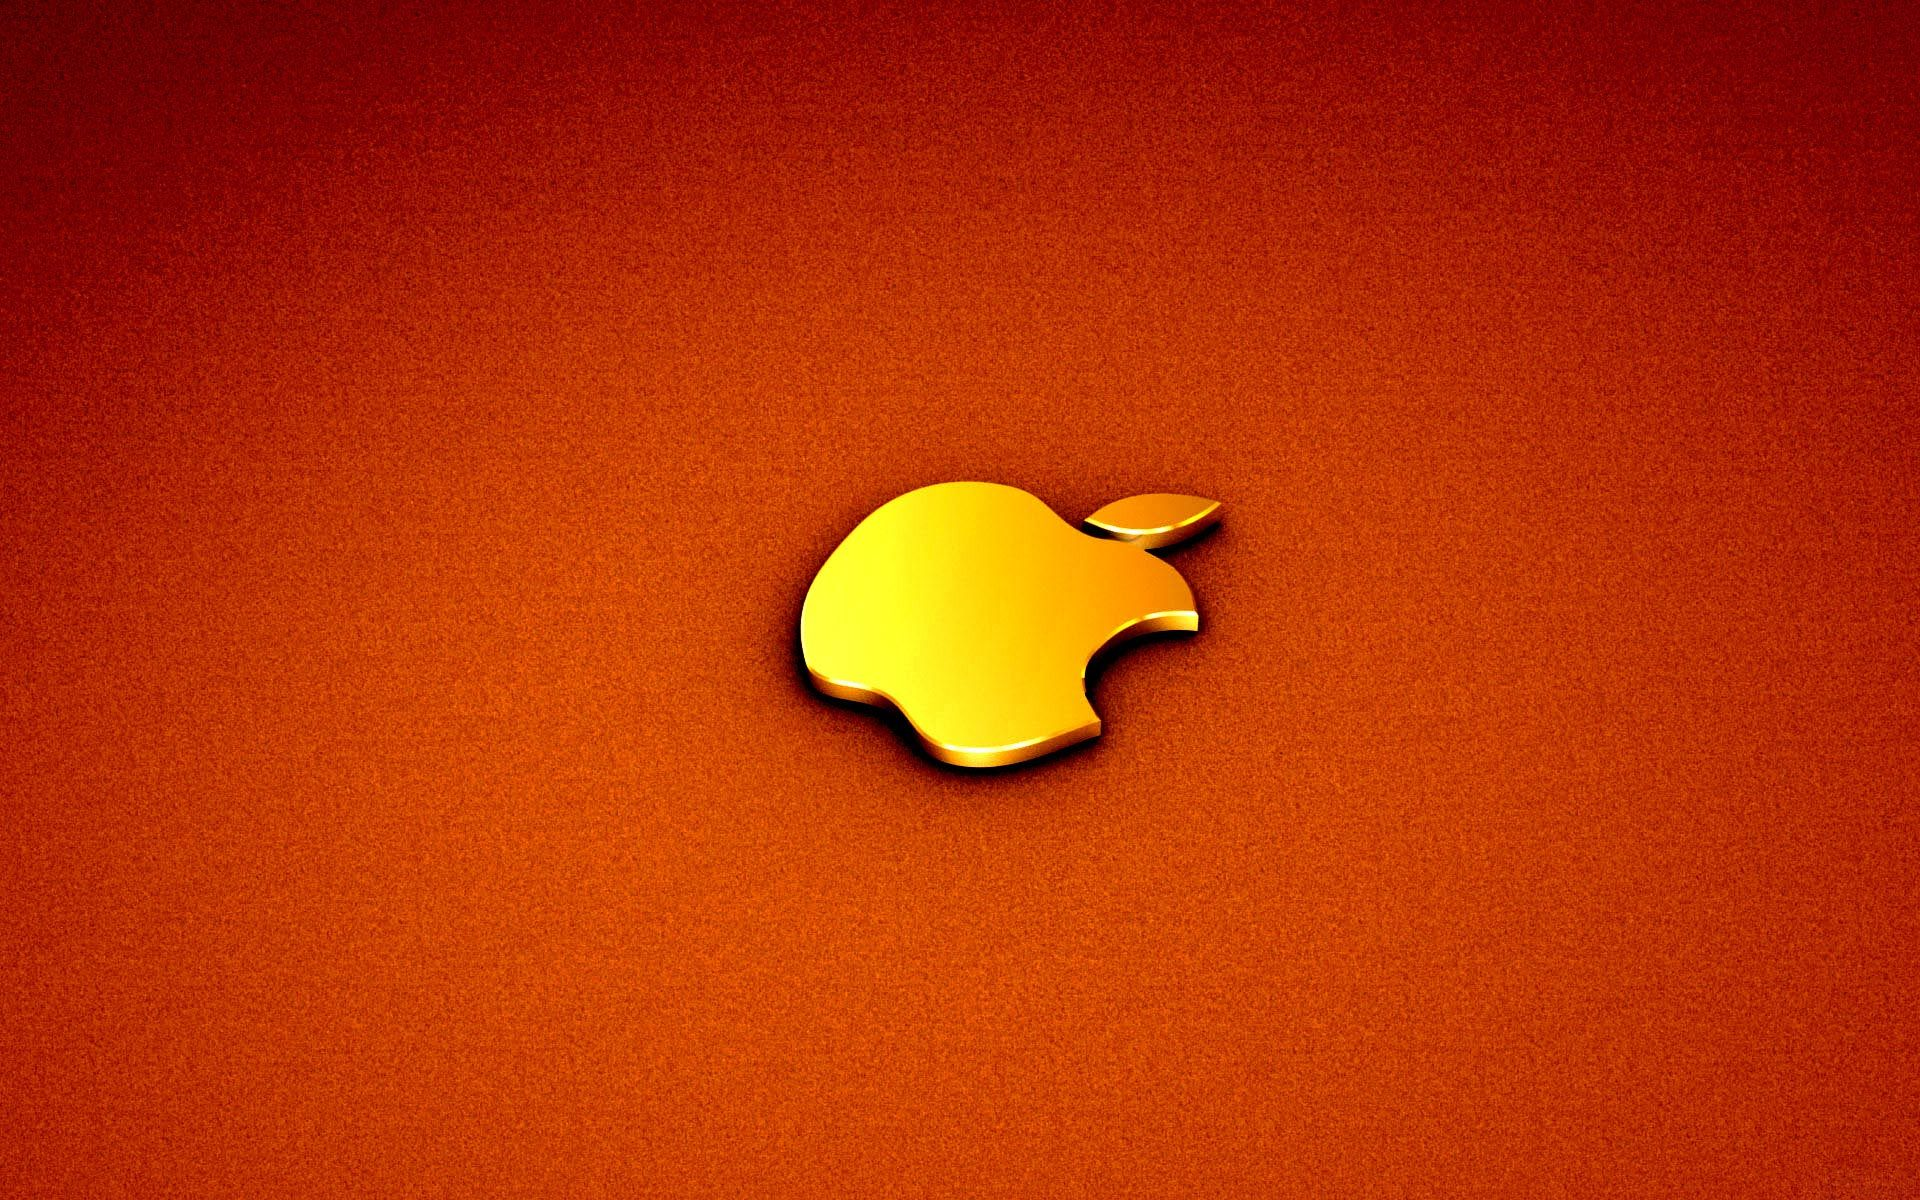 Simple Wallpaper High Quality Macbook - ca49033620c3c232f22a09849ae18931  Pictures_288495.jpg